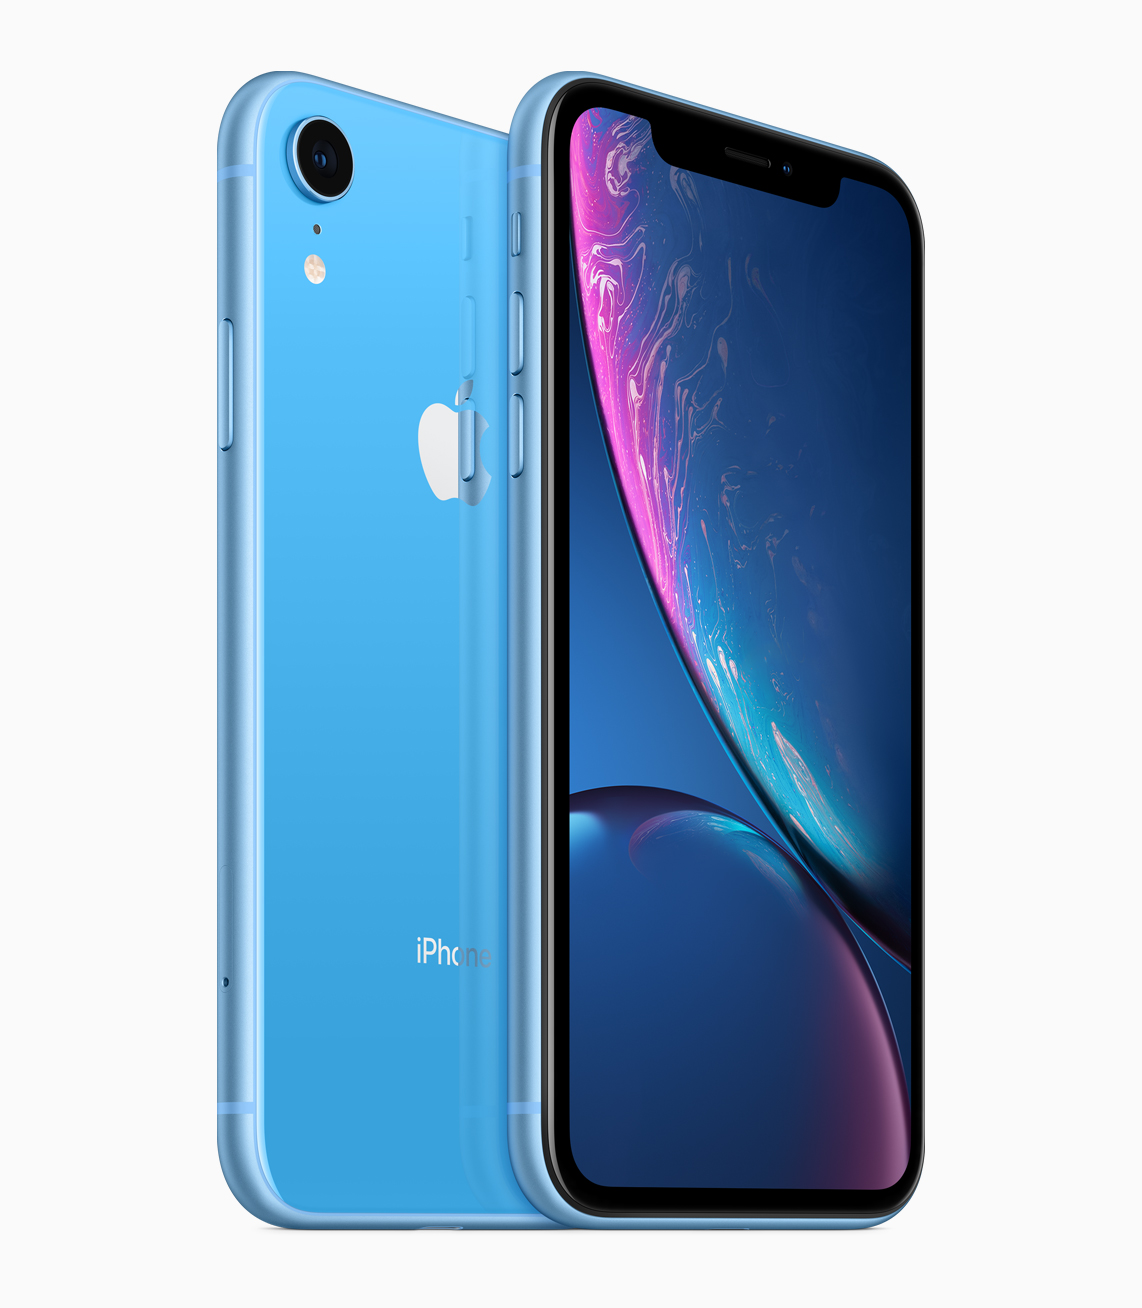 Switch to Sprint and get a 64GB iPhone Xr for free